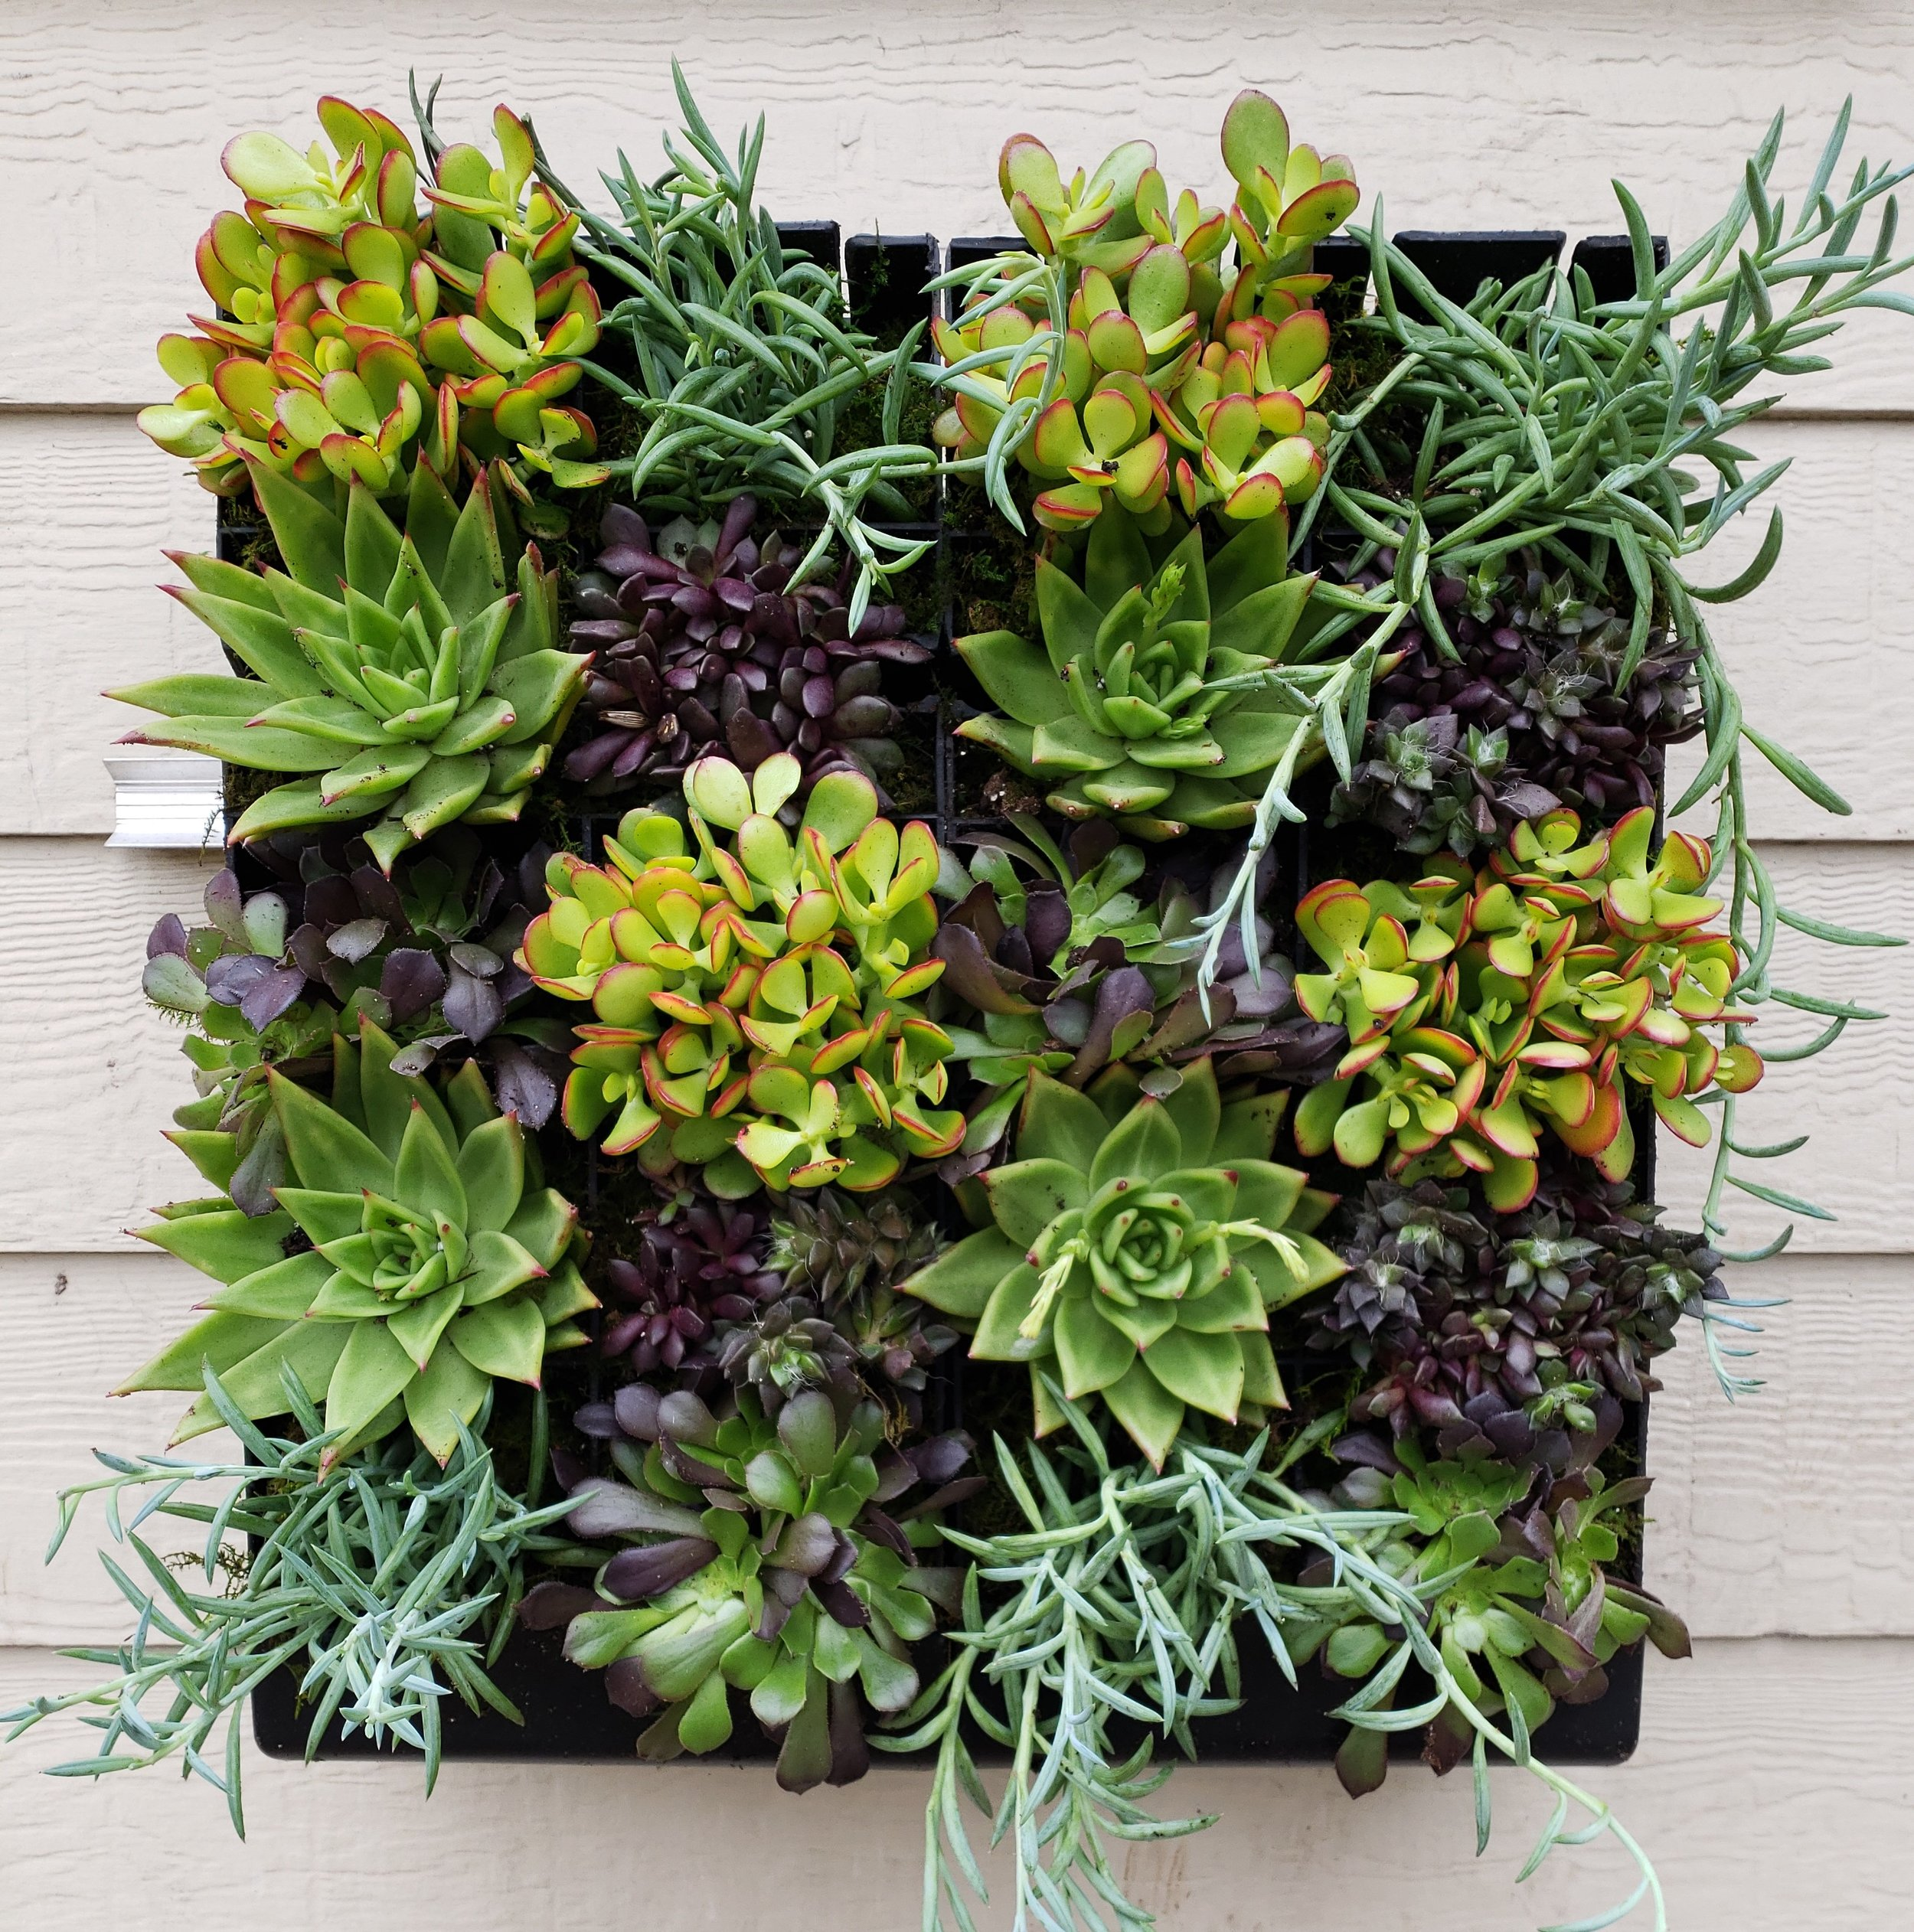 Succulent Collection Grovert Living Wall Planter Edible Walls